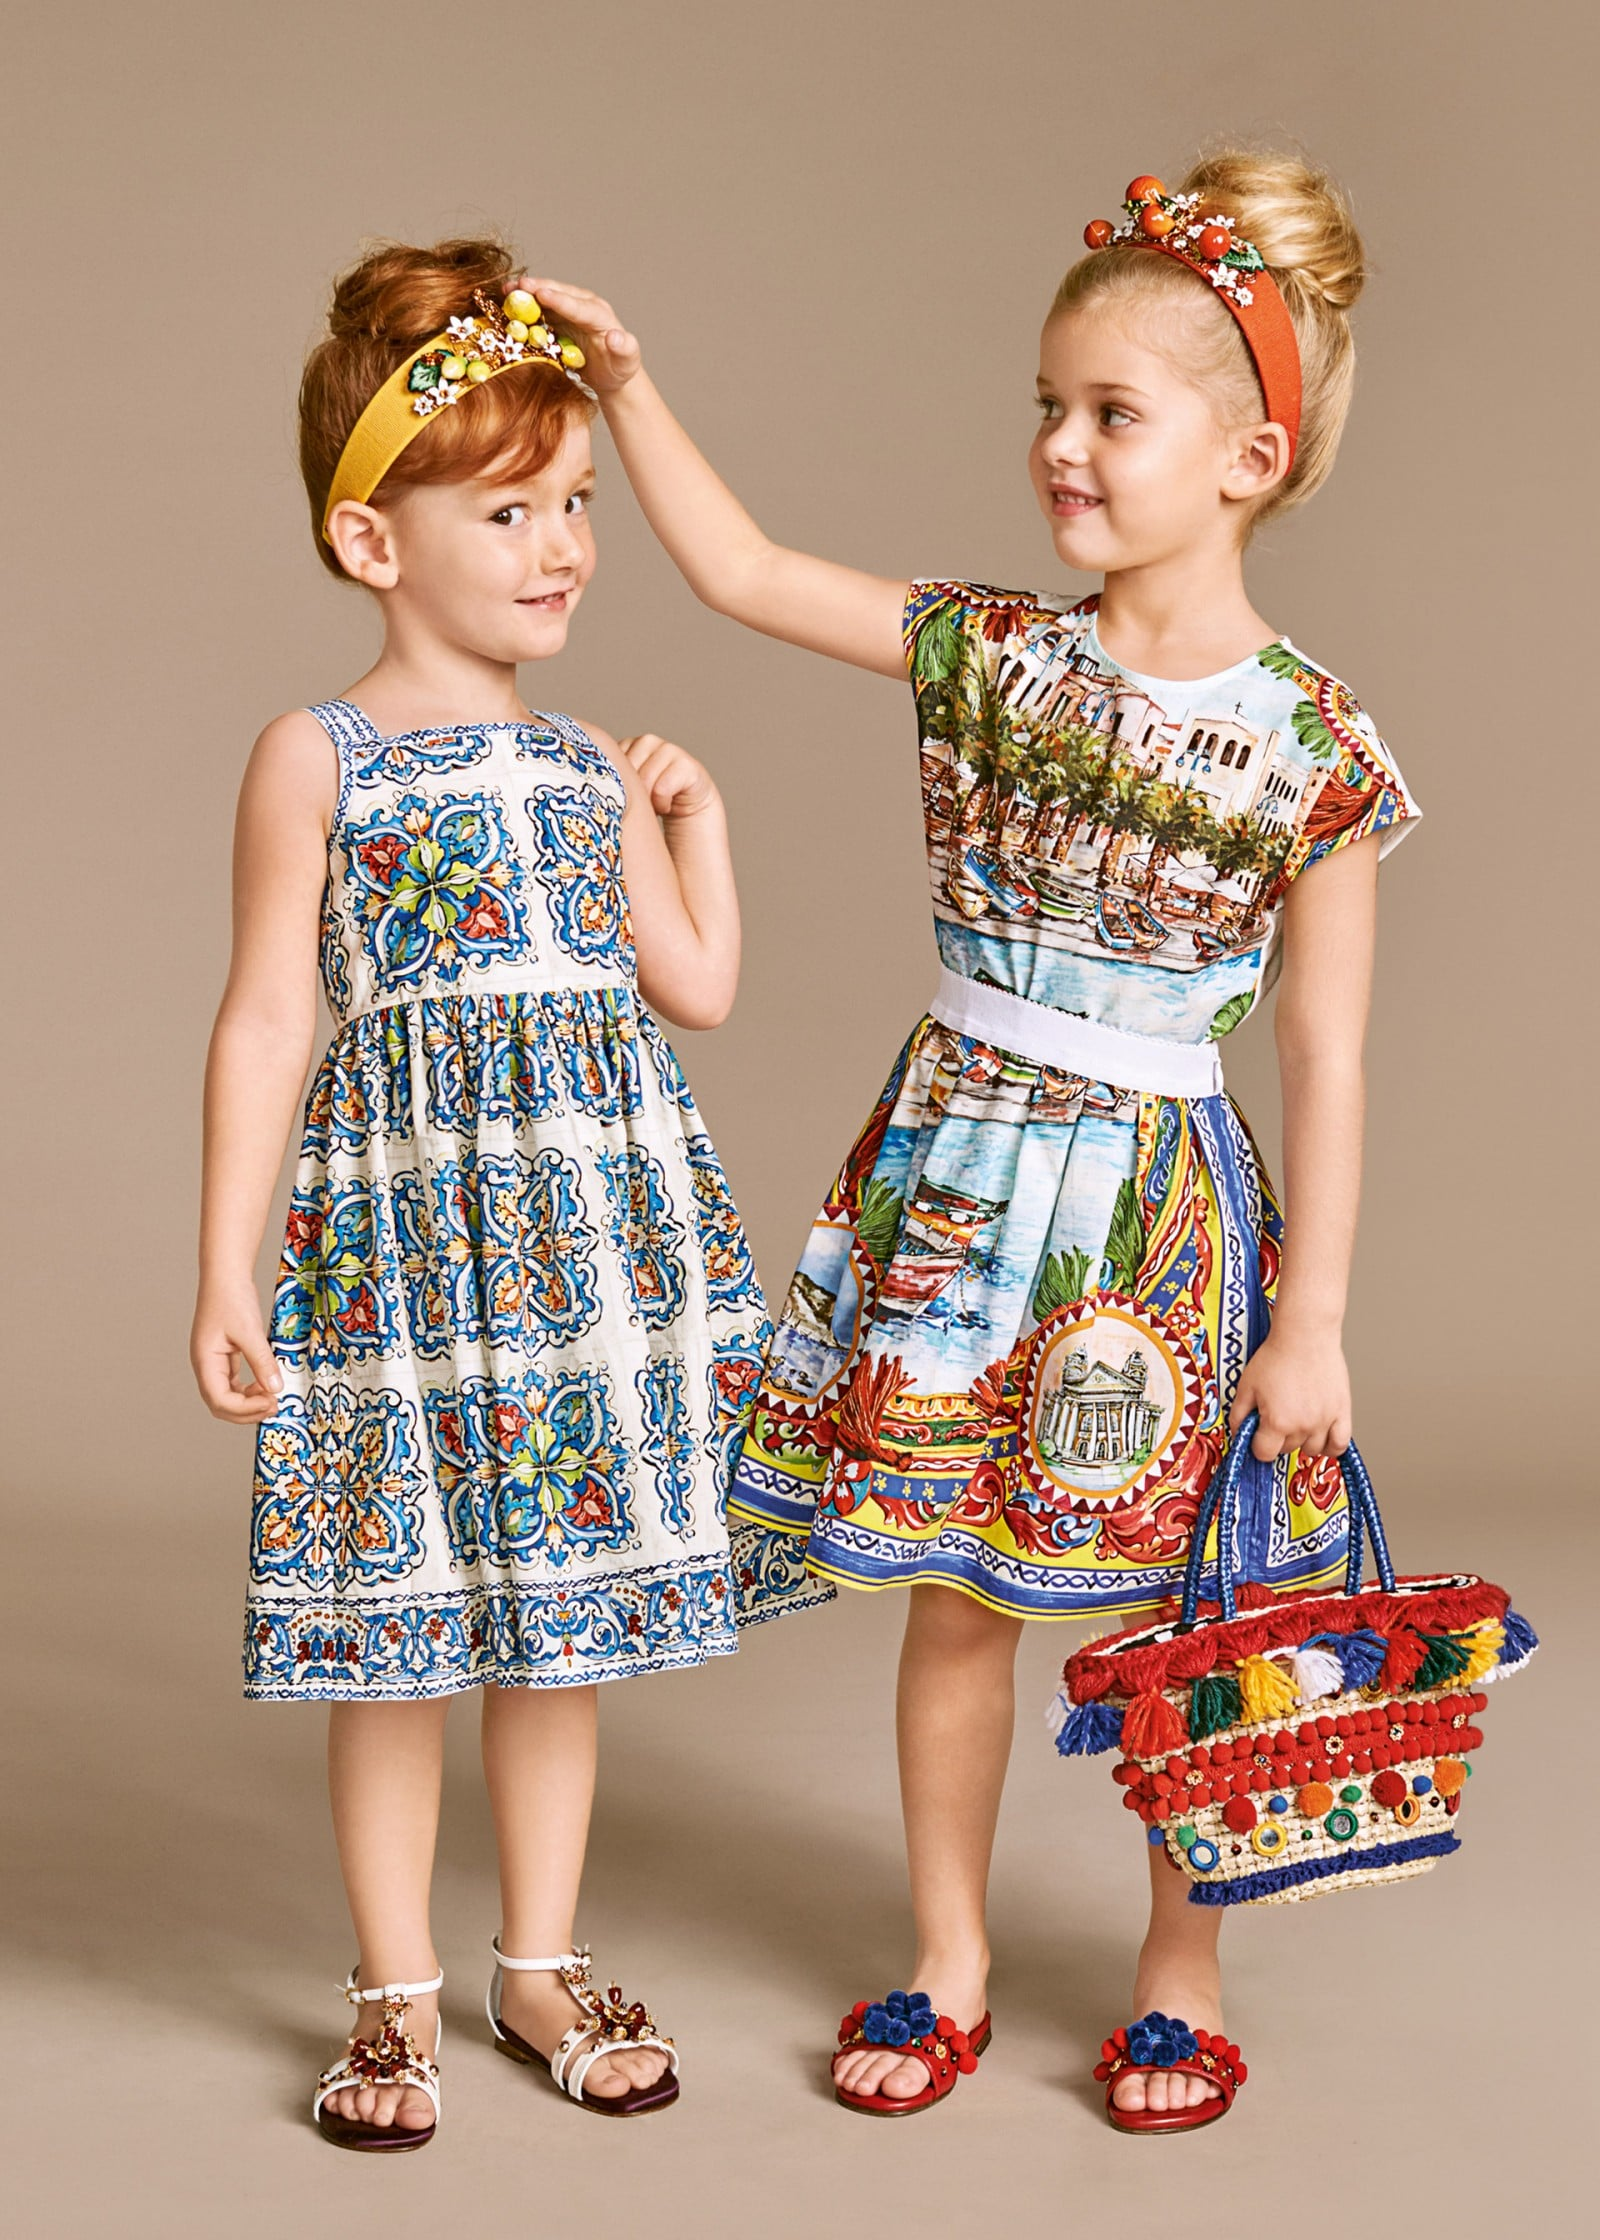 dolce-and-gabbana-summer-2016-child-collection-471-1600x2240.jpg